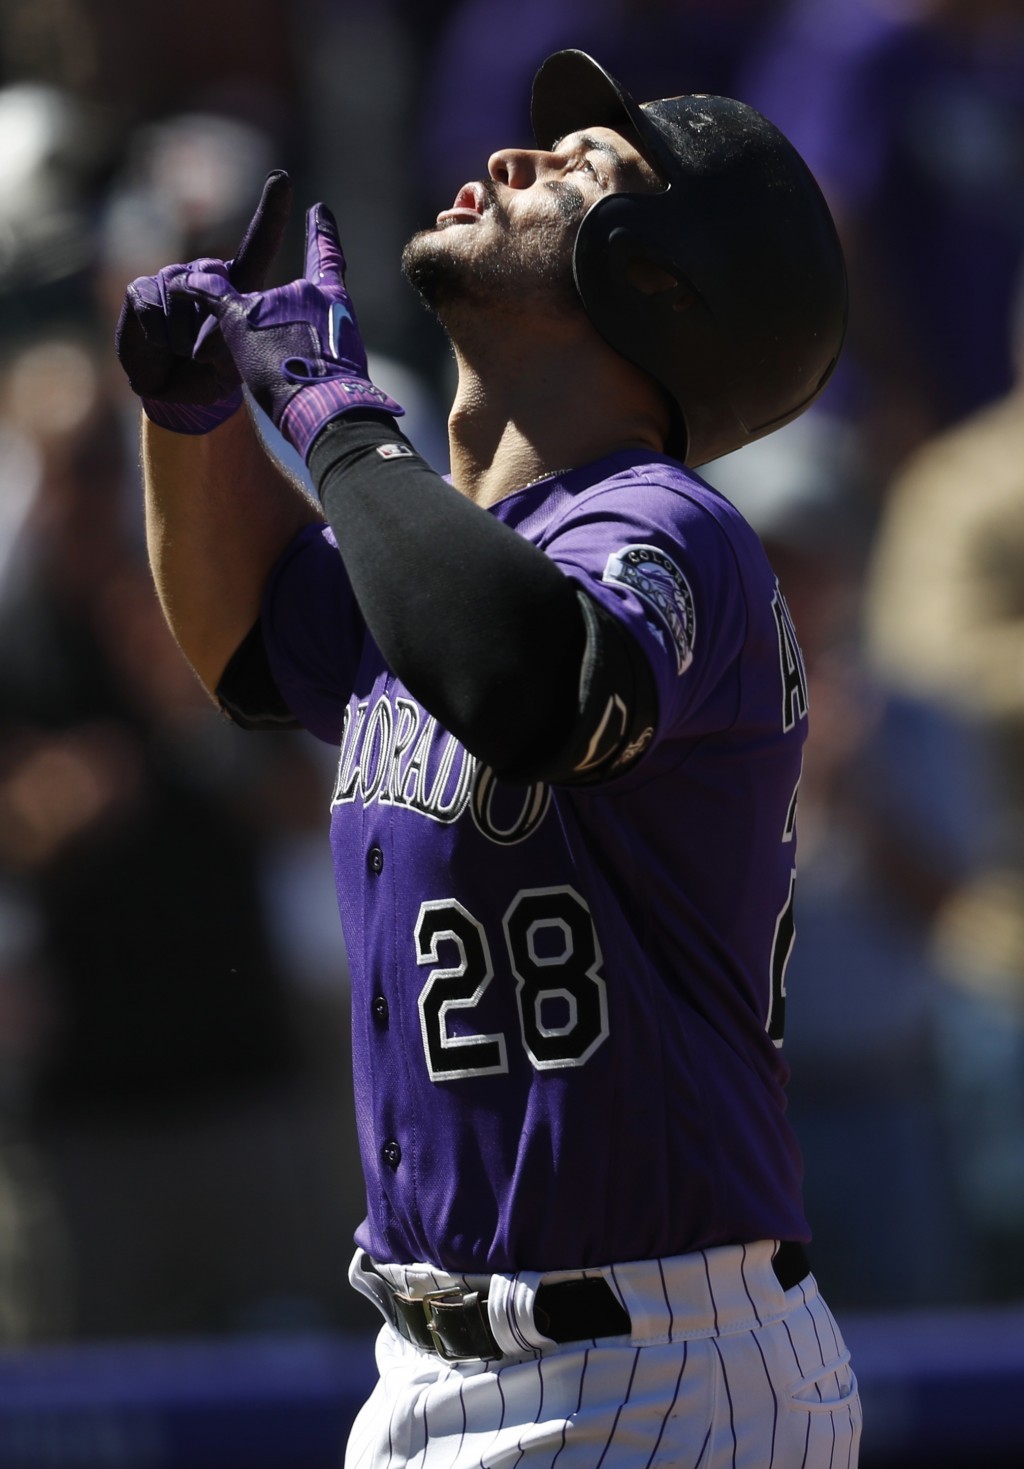 Colorado Rockies' Nolan Arenado gestures as he crosses home plate after hitting a solo home run off Arizona Diamondbacks starting pitcher Matt Koch in